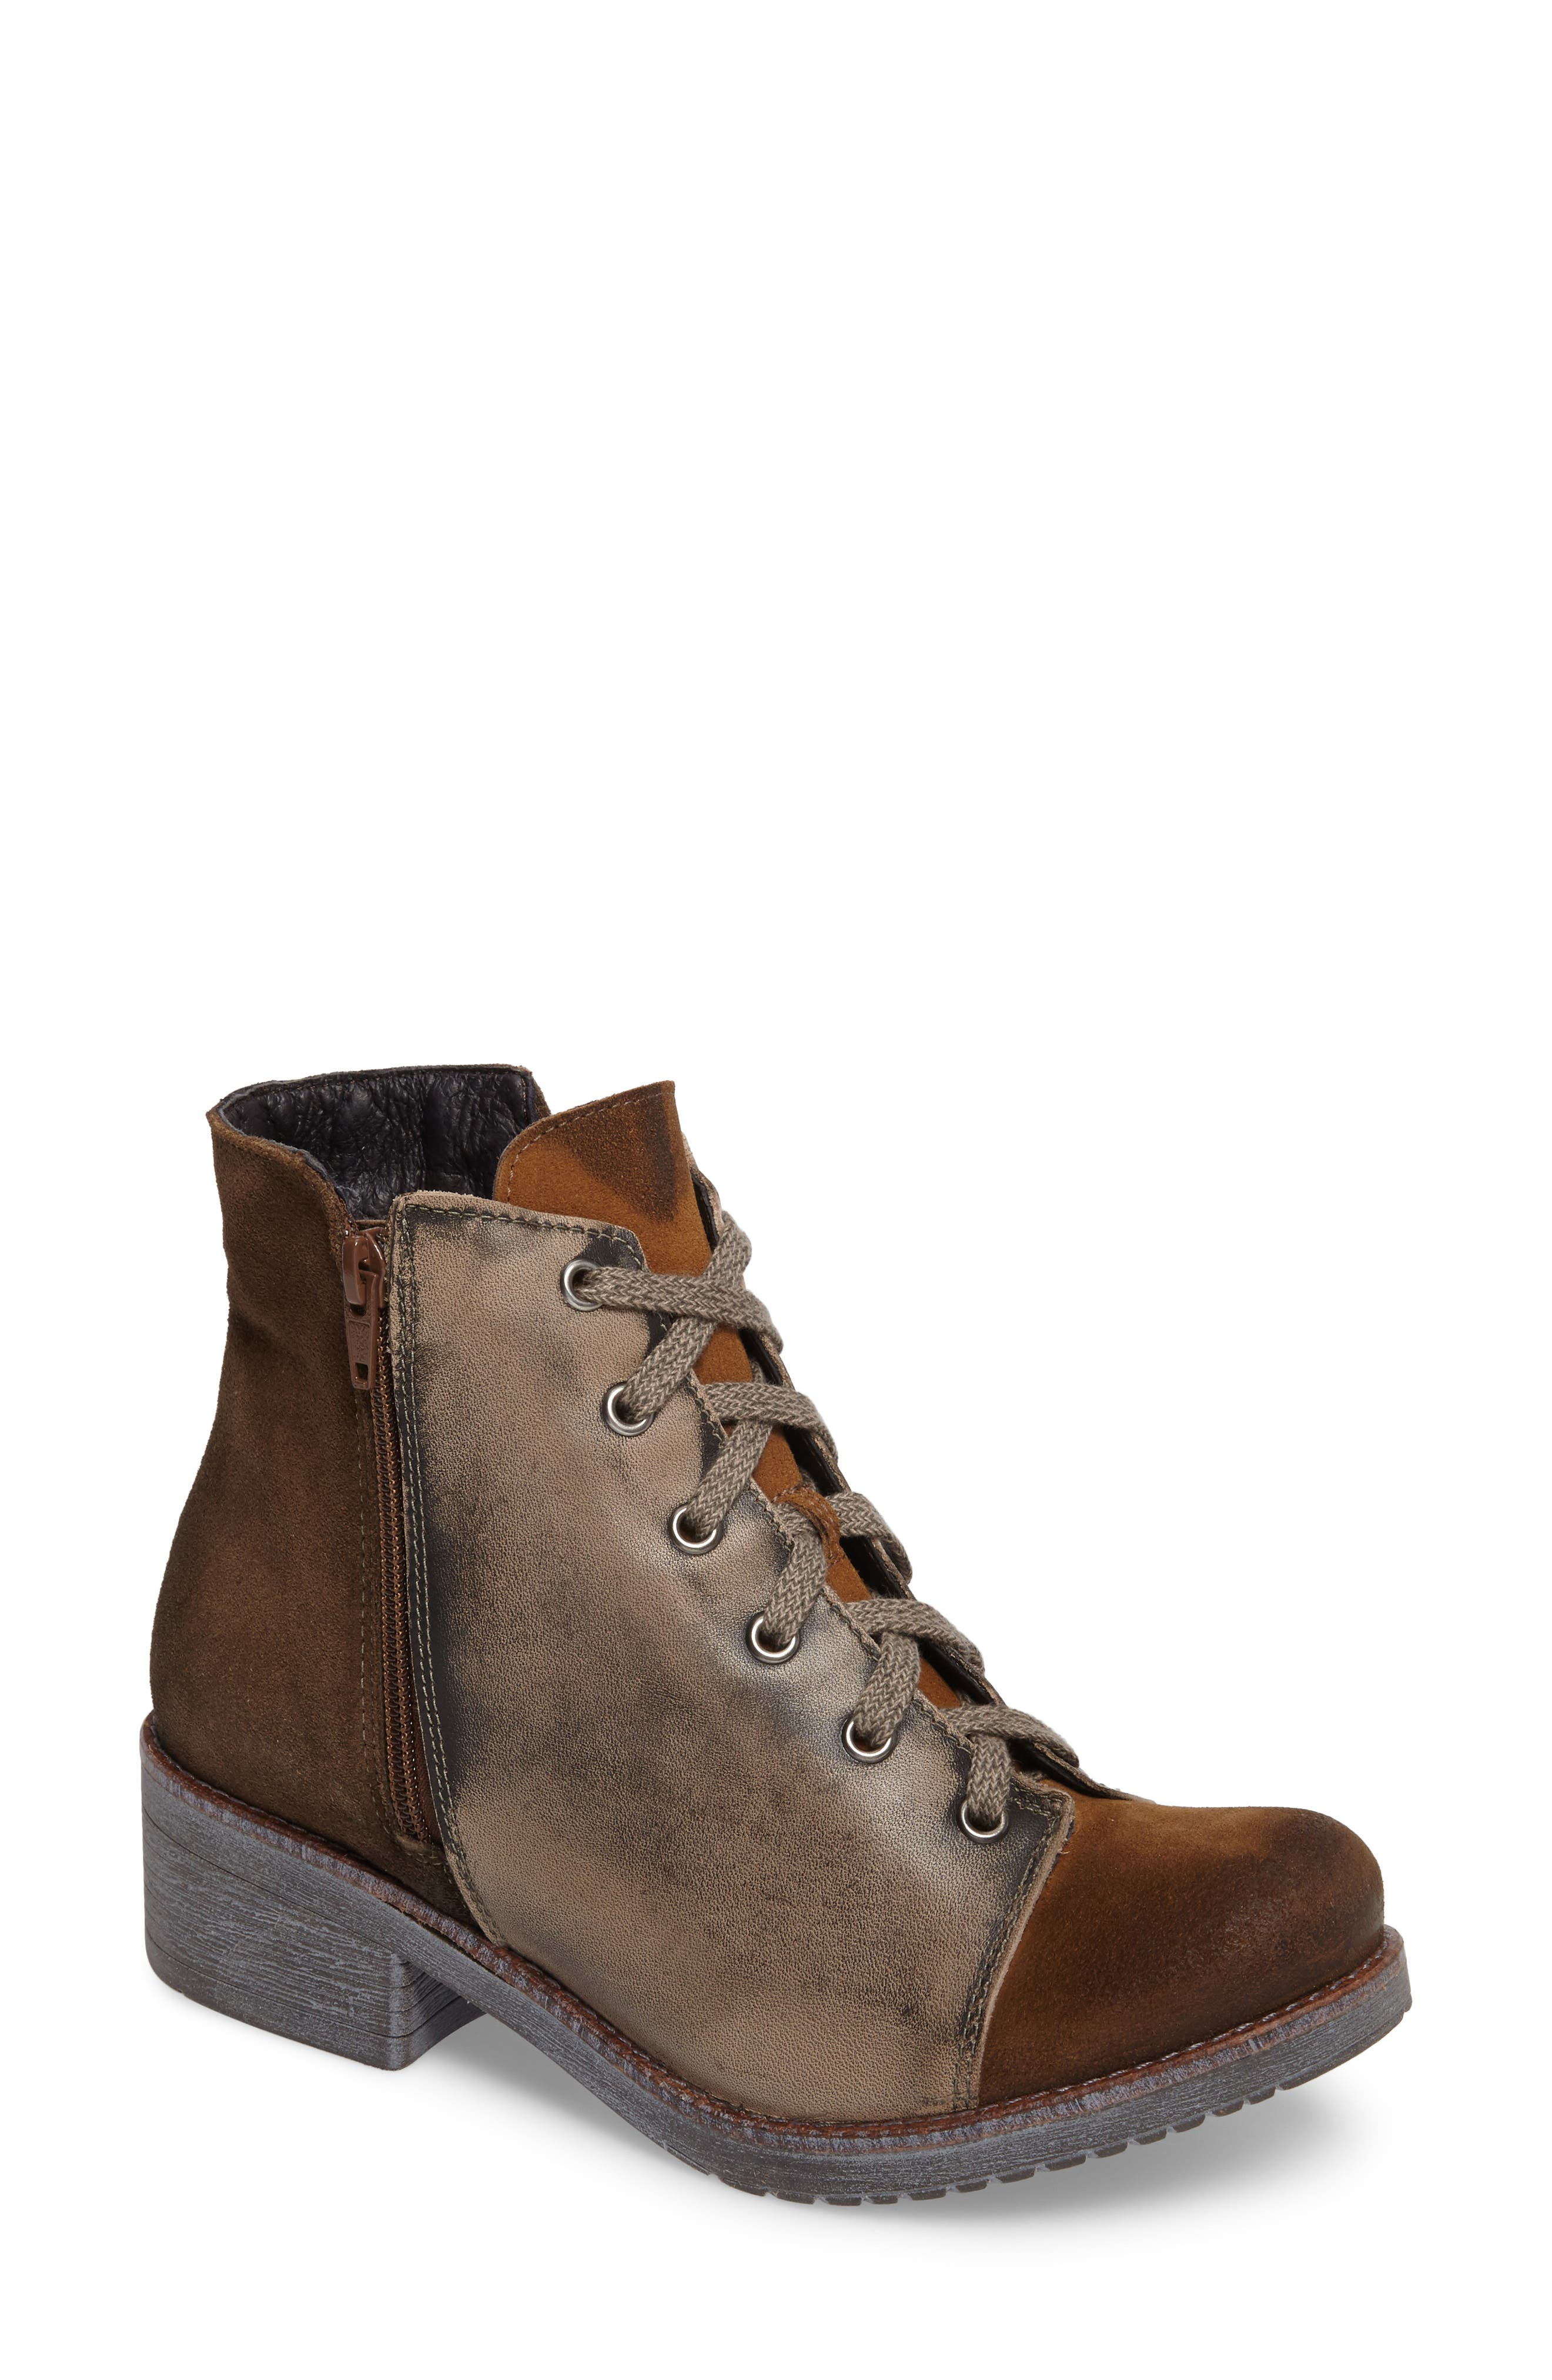 Groovy Lace Up Bootie,                             Main thumbnail 2, color,